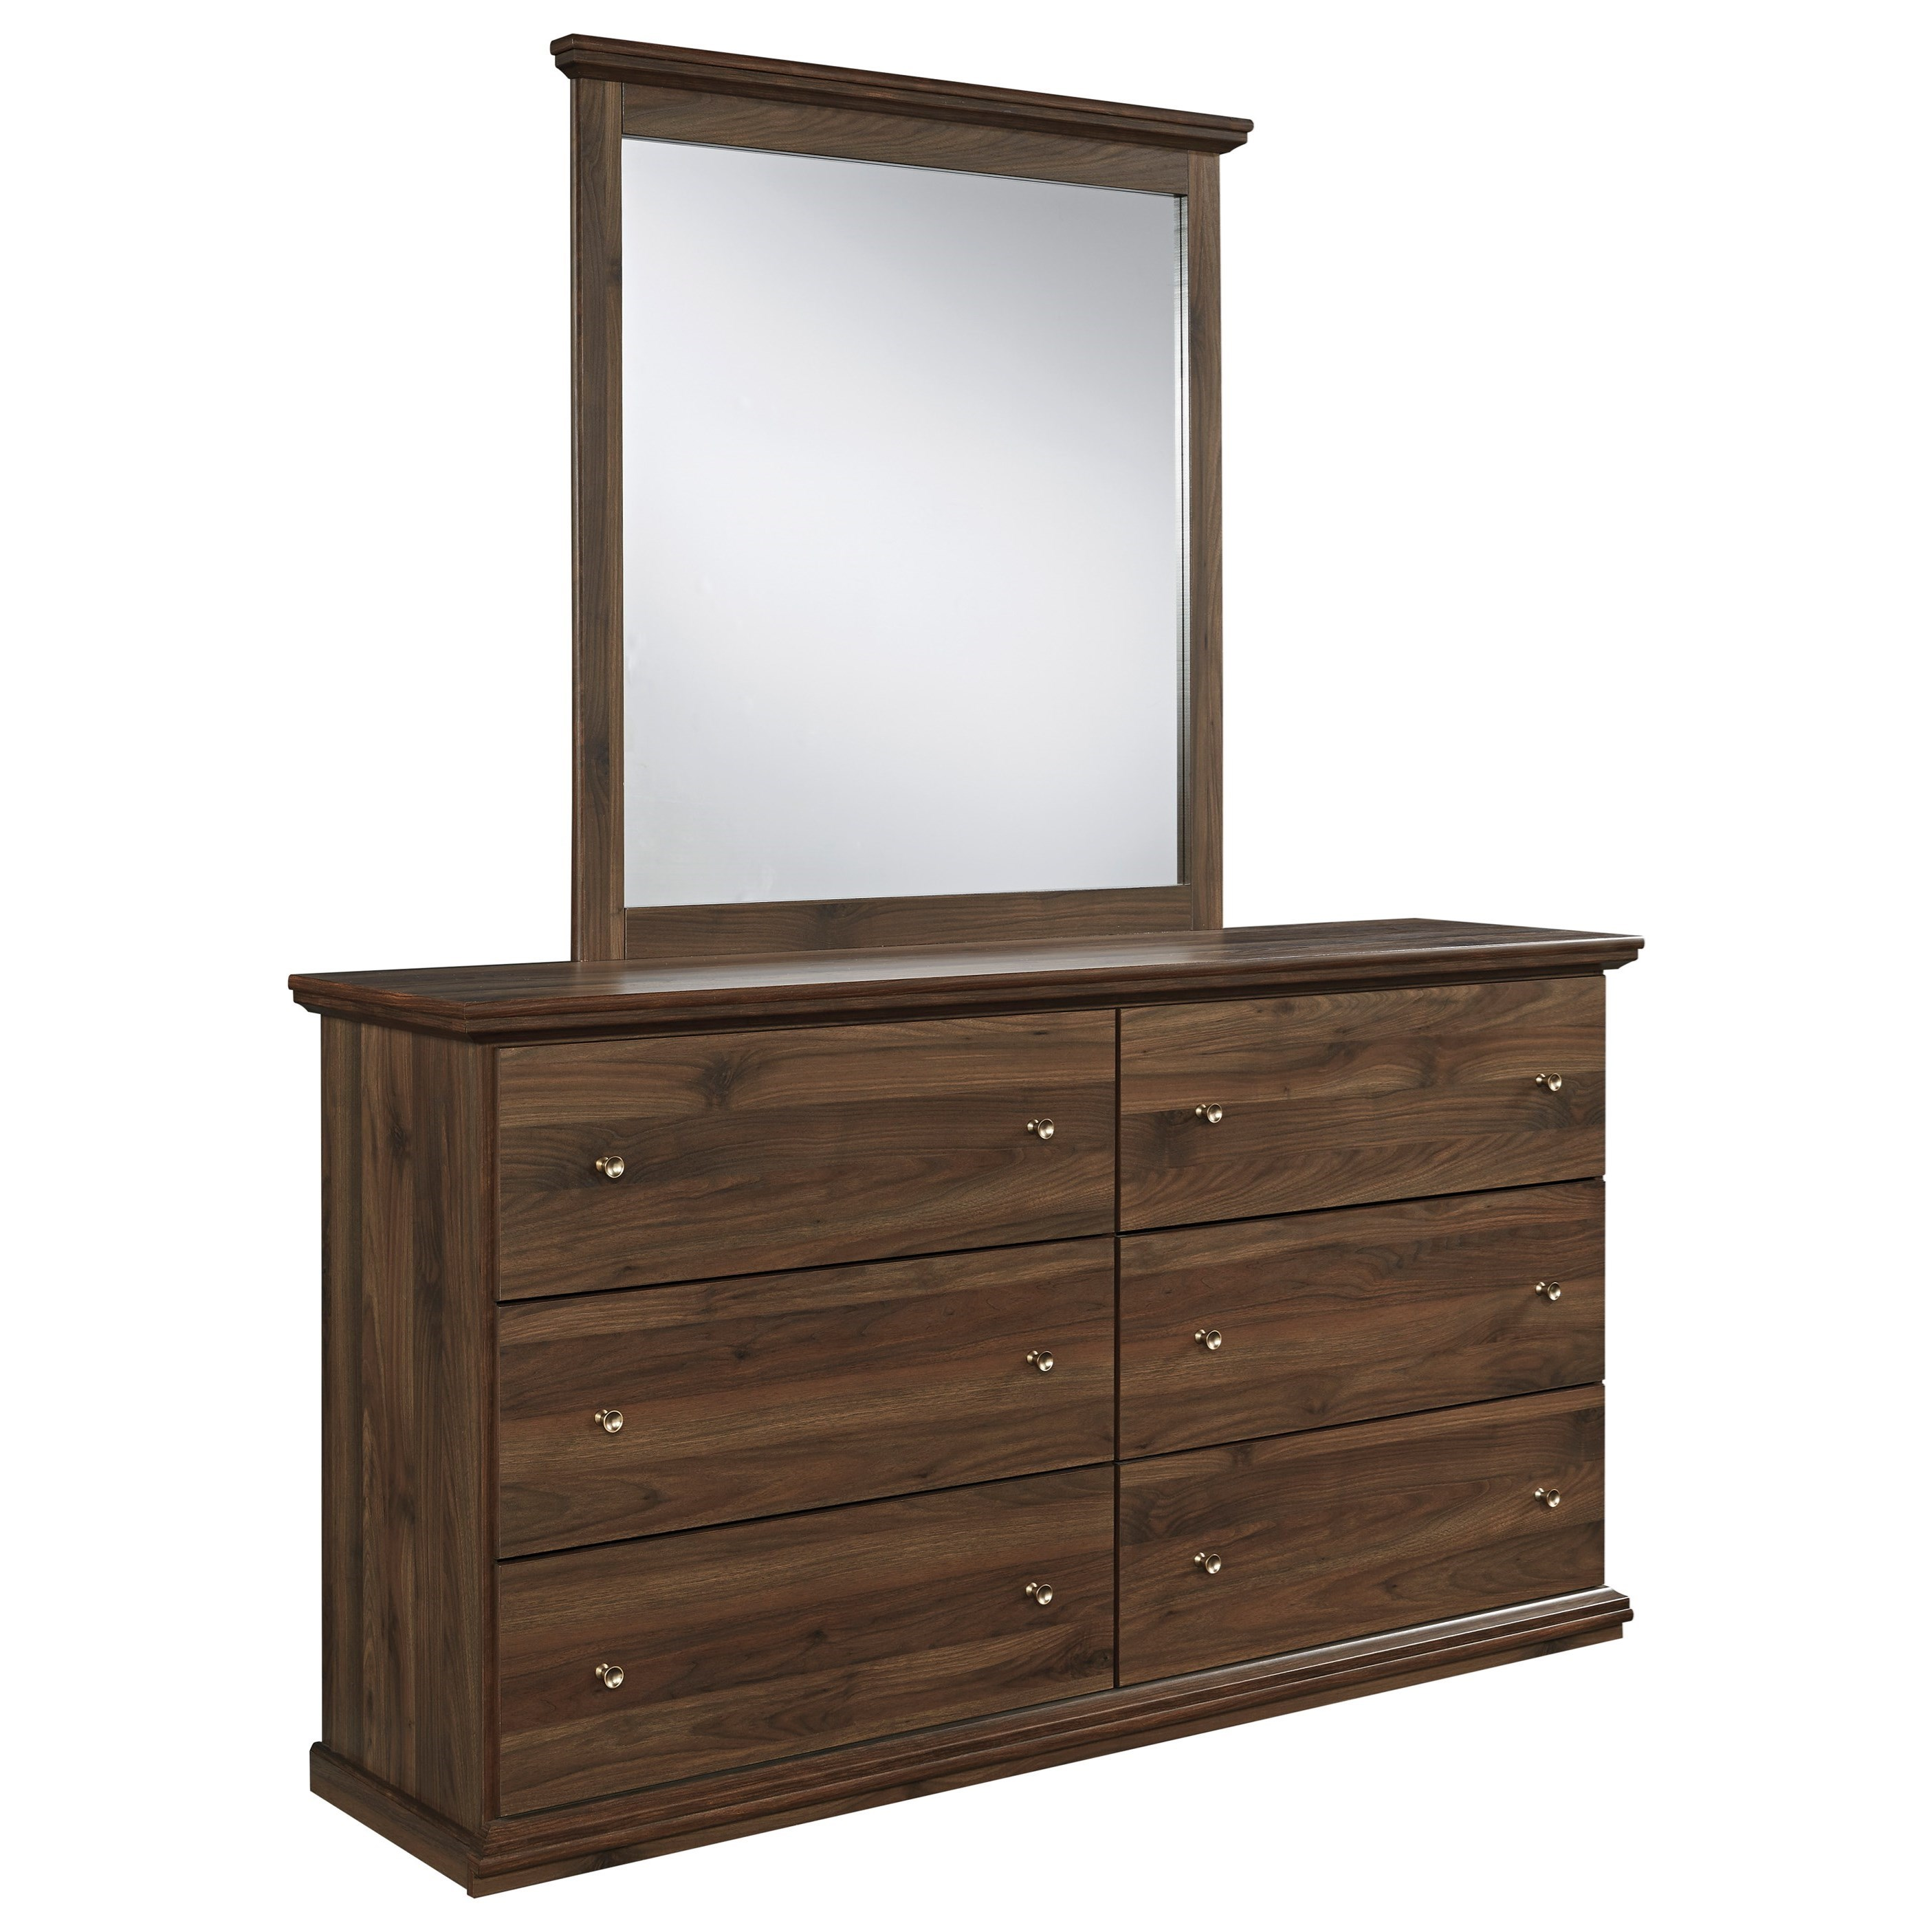 Signature Design by Ashley Burminson Dresser & Mirror - Item Number: B135-31+36